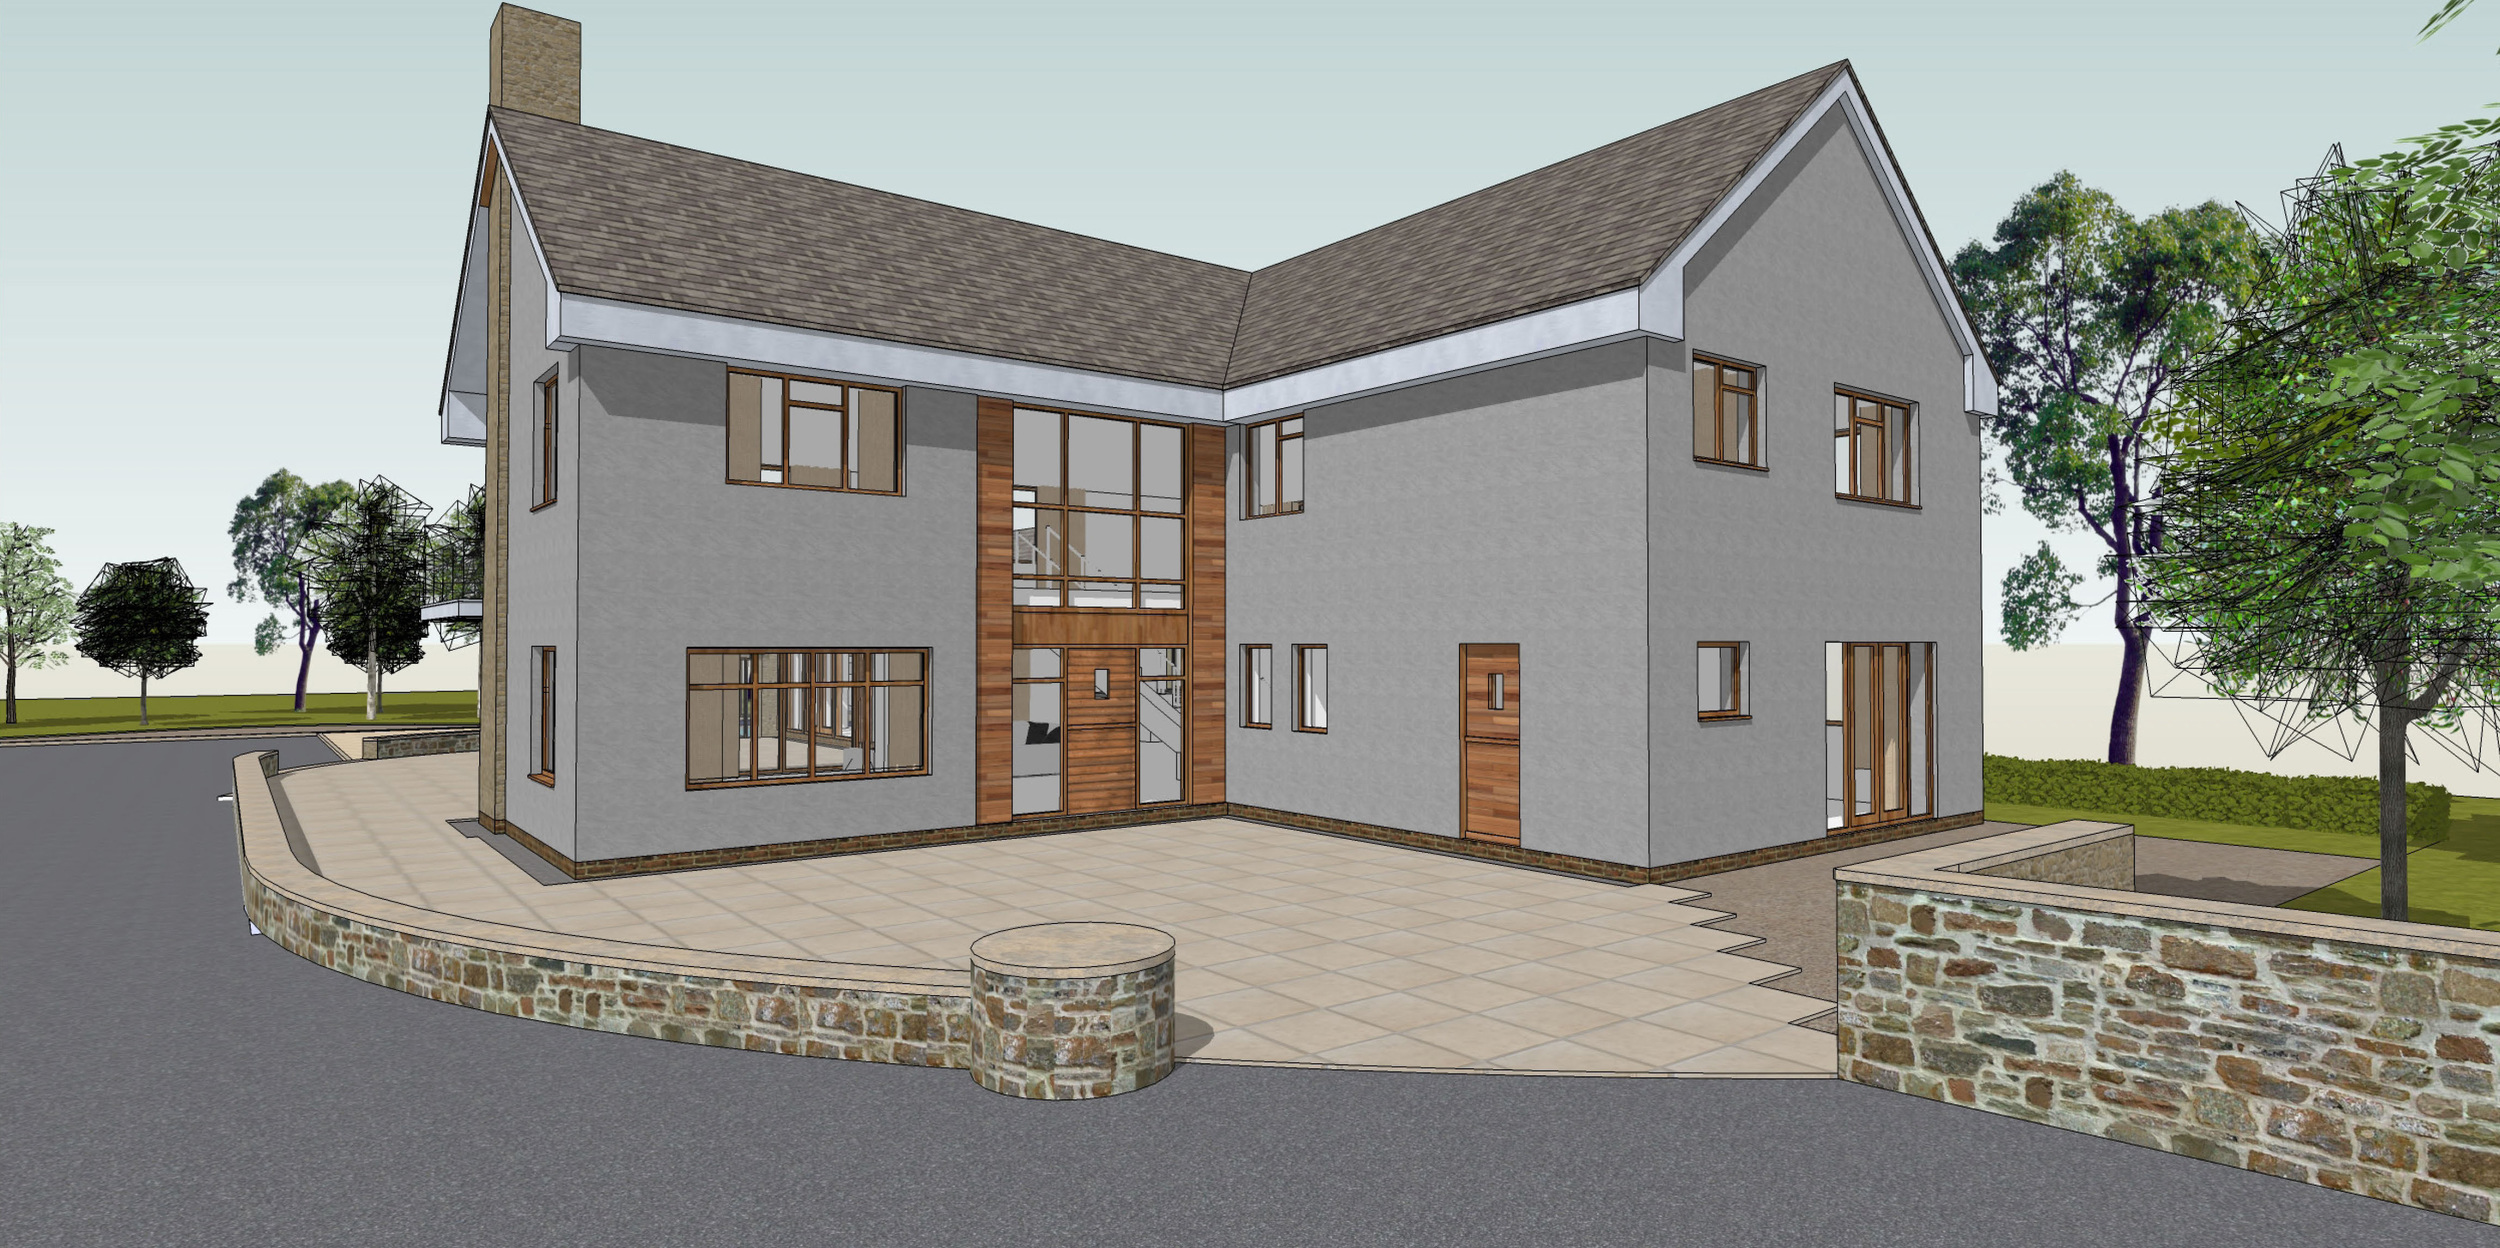 Private Residential: Brookfields Farm (built)